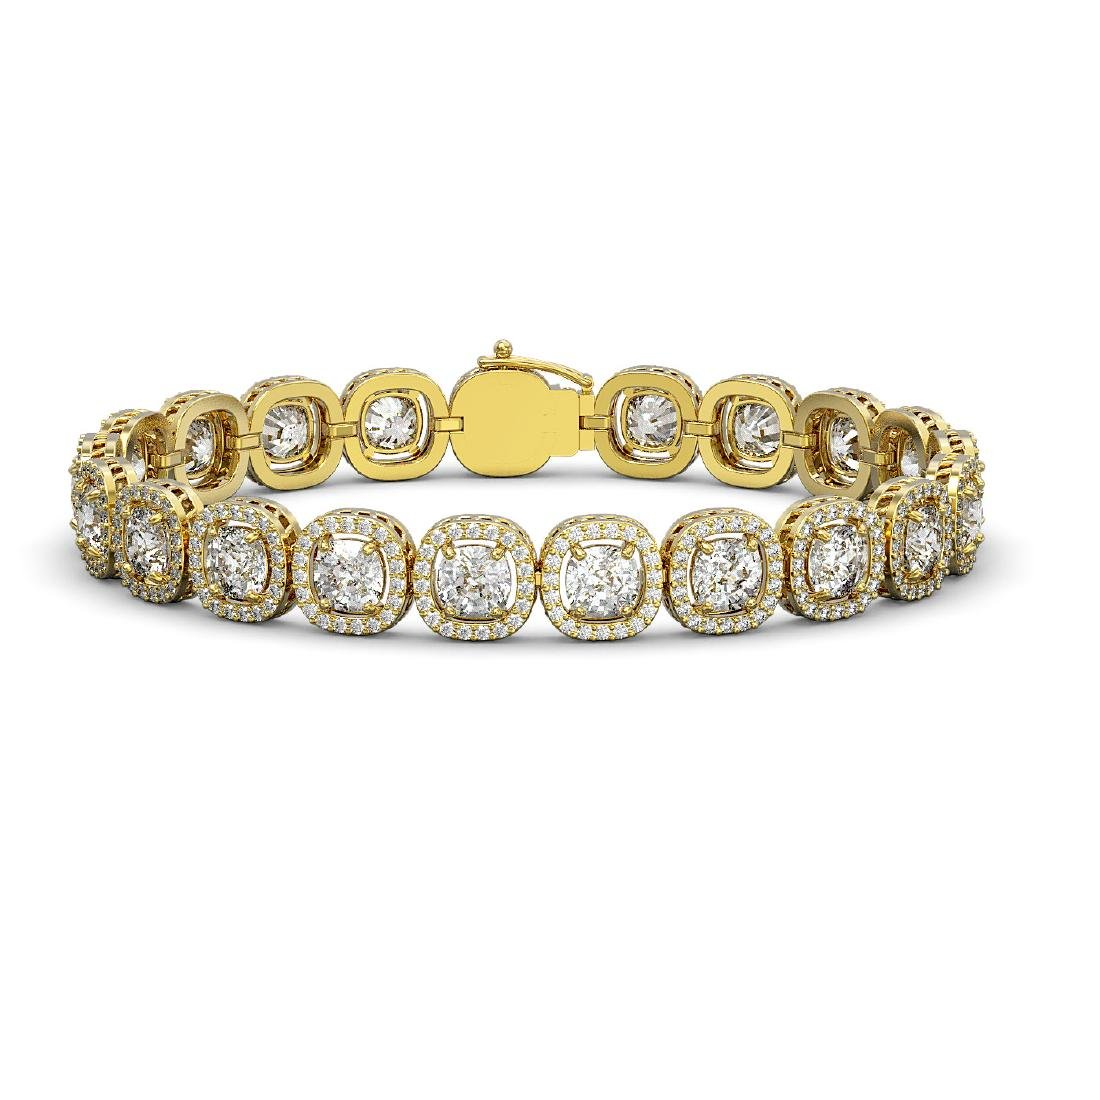 14.41 CTW Cushion Diamond Designer Bracelet 18K Yellow